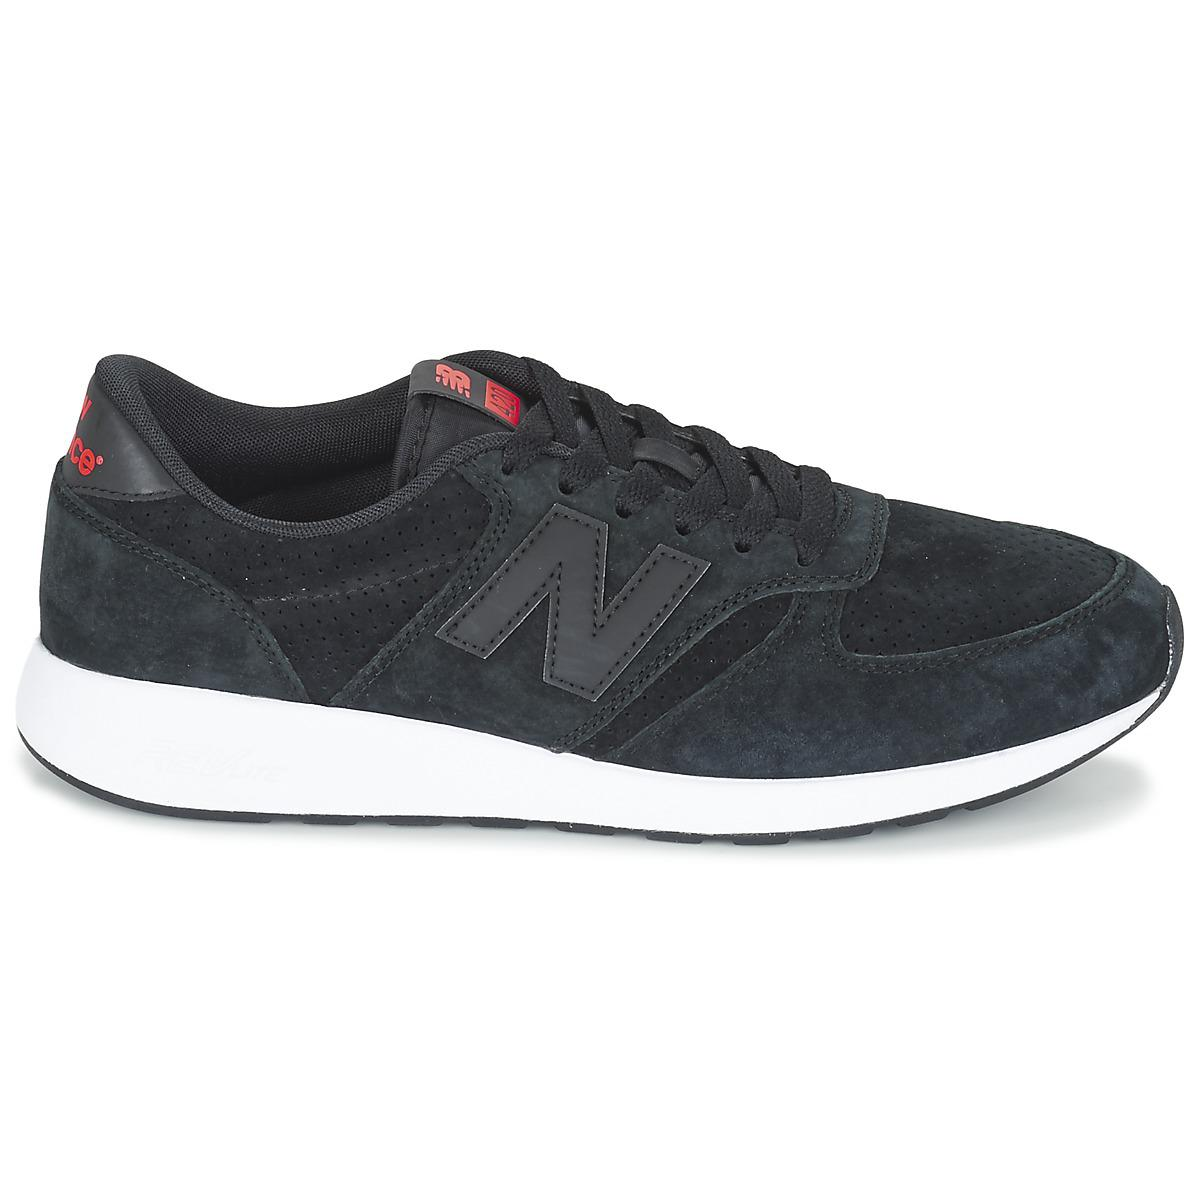 official photos ec056 5dbd2 New Balance Mrl420 Men's Shoes (trainers) In Black in Black ...